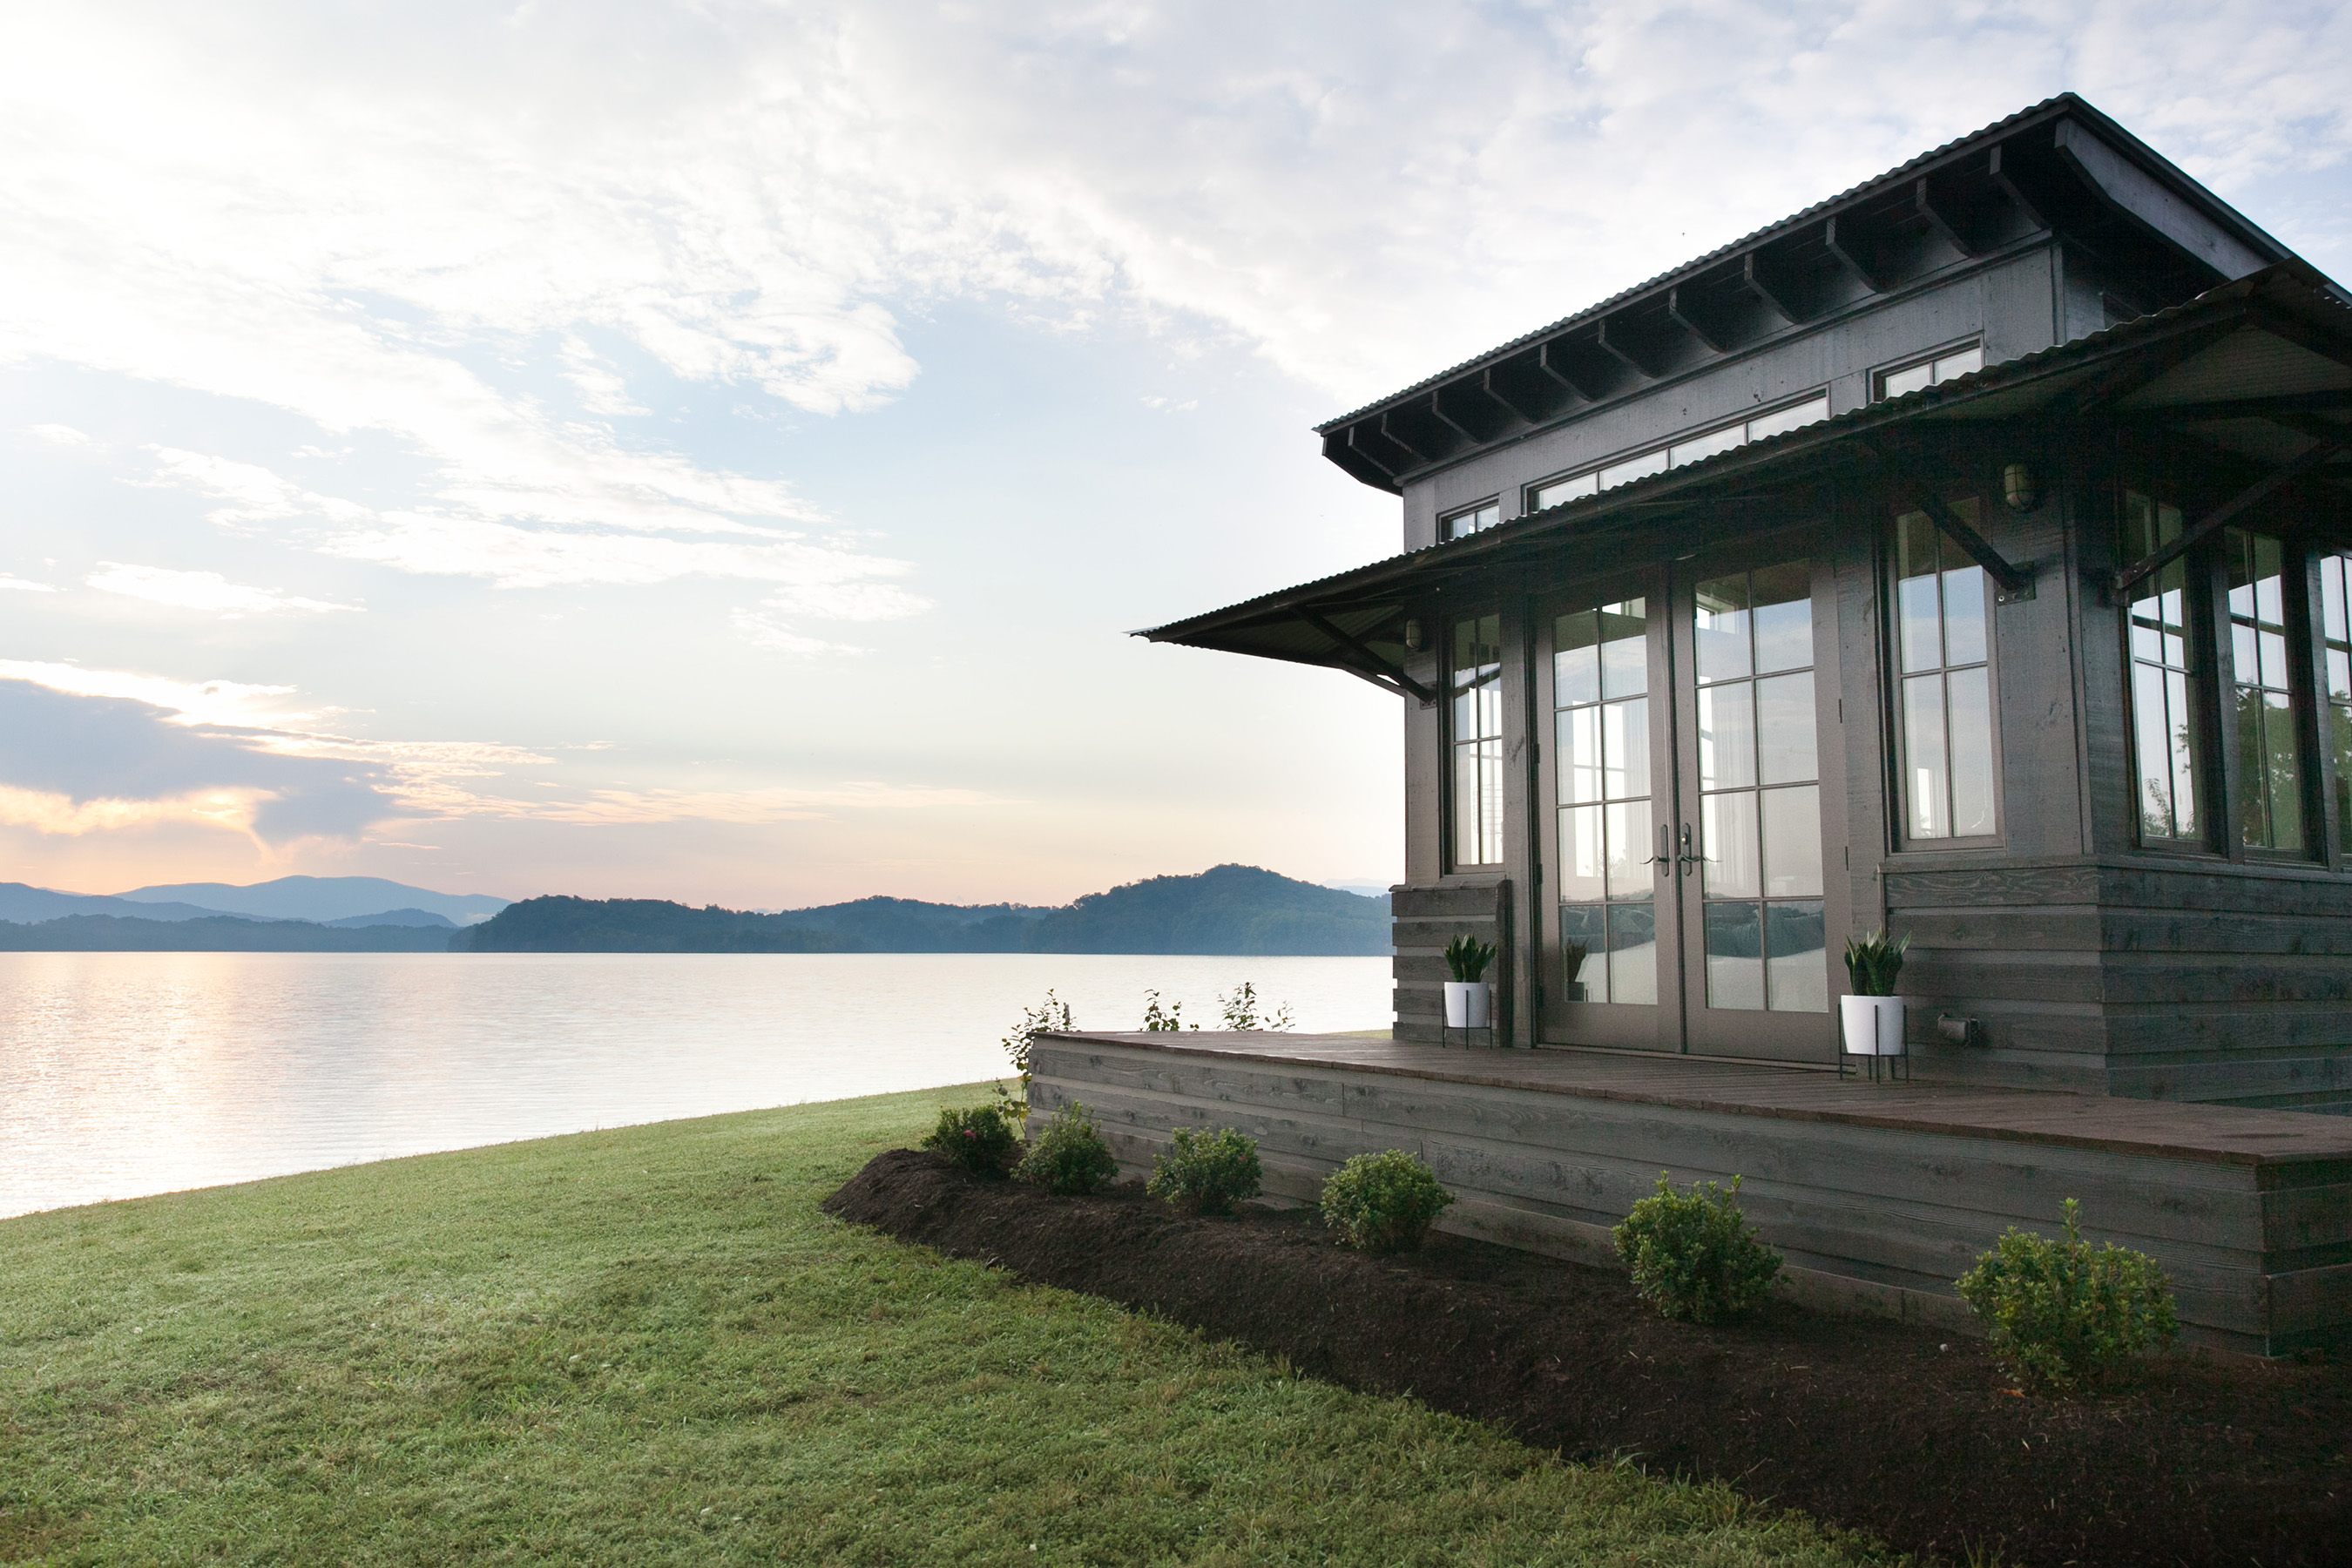 Formidable Saltbox Is Designed To Be A Vacation Clayton Tiny Homes Unveils Saltbox Plan Dec 2017 Clayton Tiny Homes Cashiers Nc Clayton Tiny Homes Prices curbed Clayton Tiny Homes